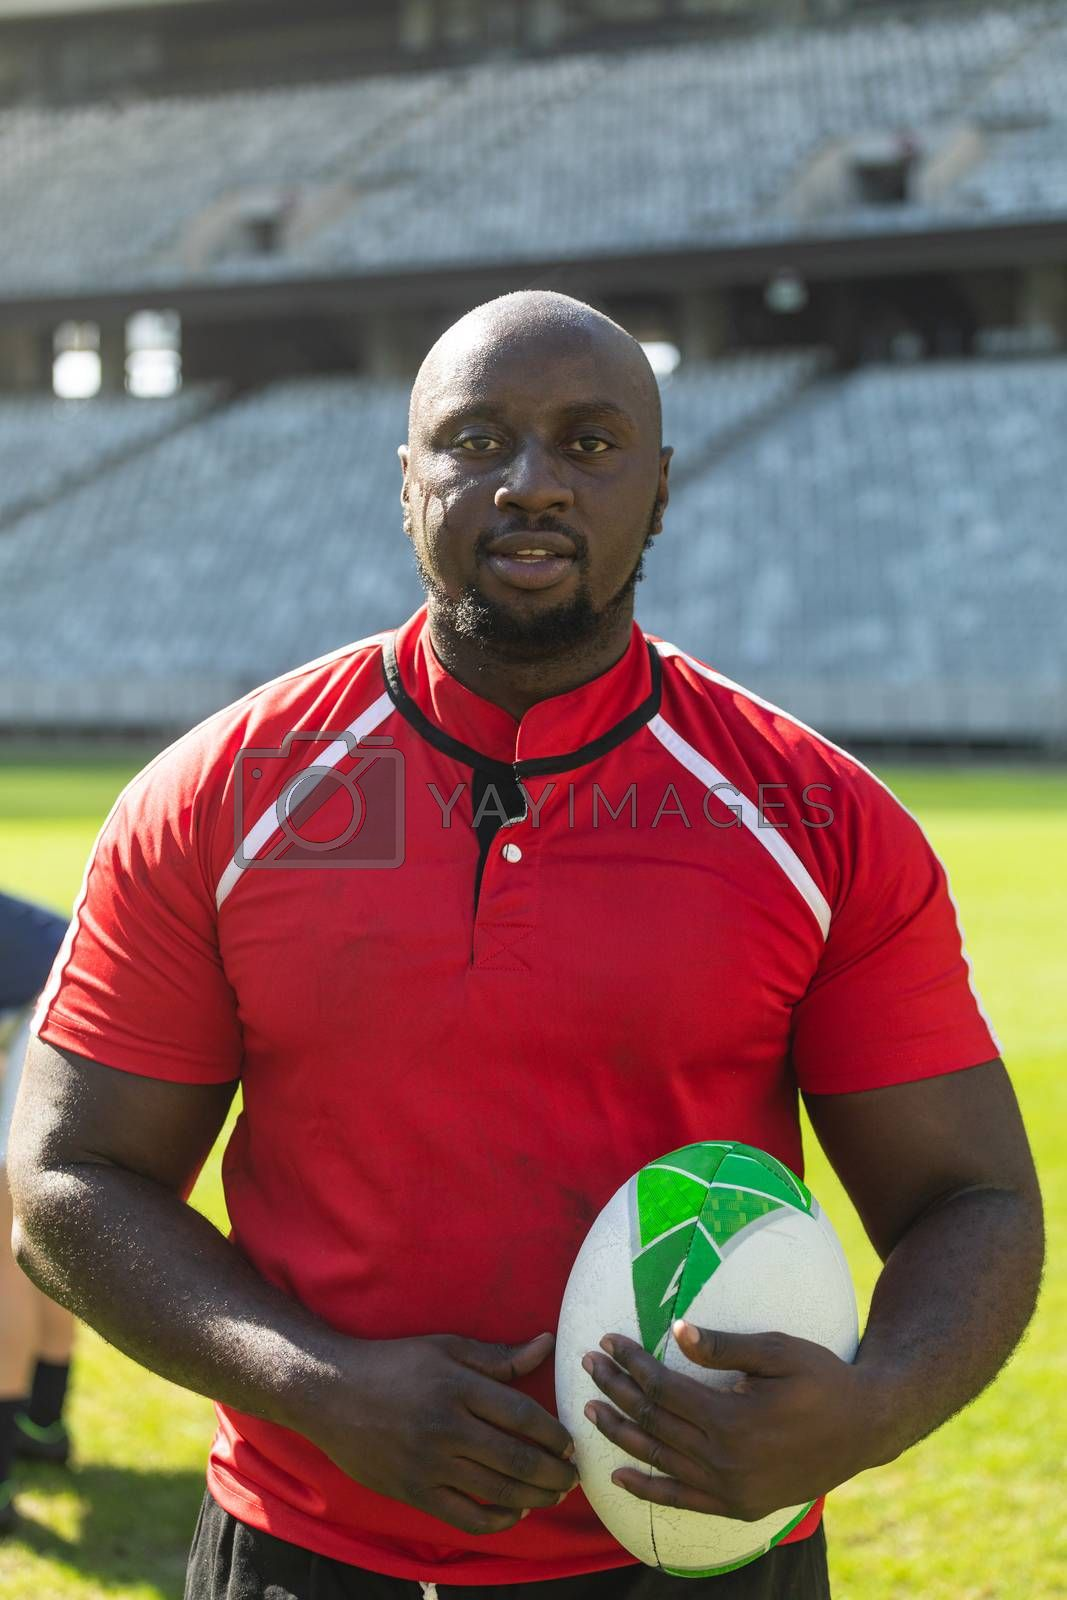 Portrait close up of handsome African American rugby player standing with rugby ball in the stadium on sunny day.